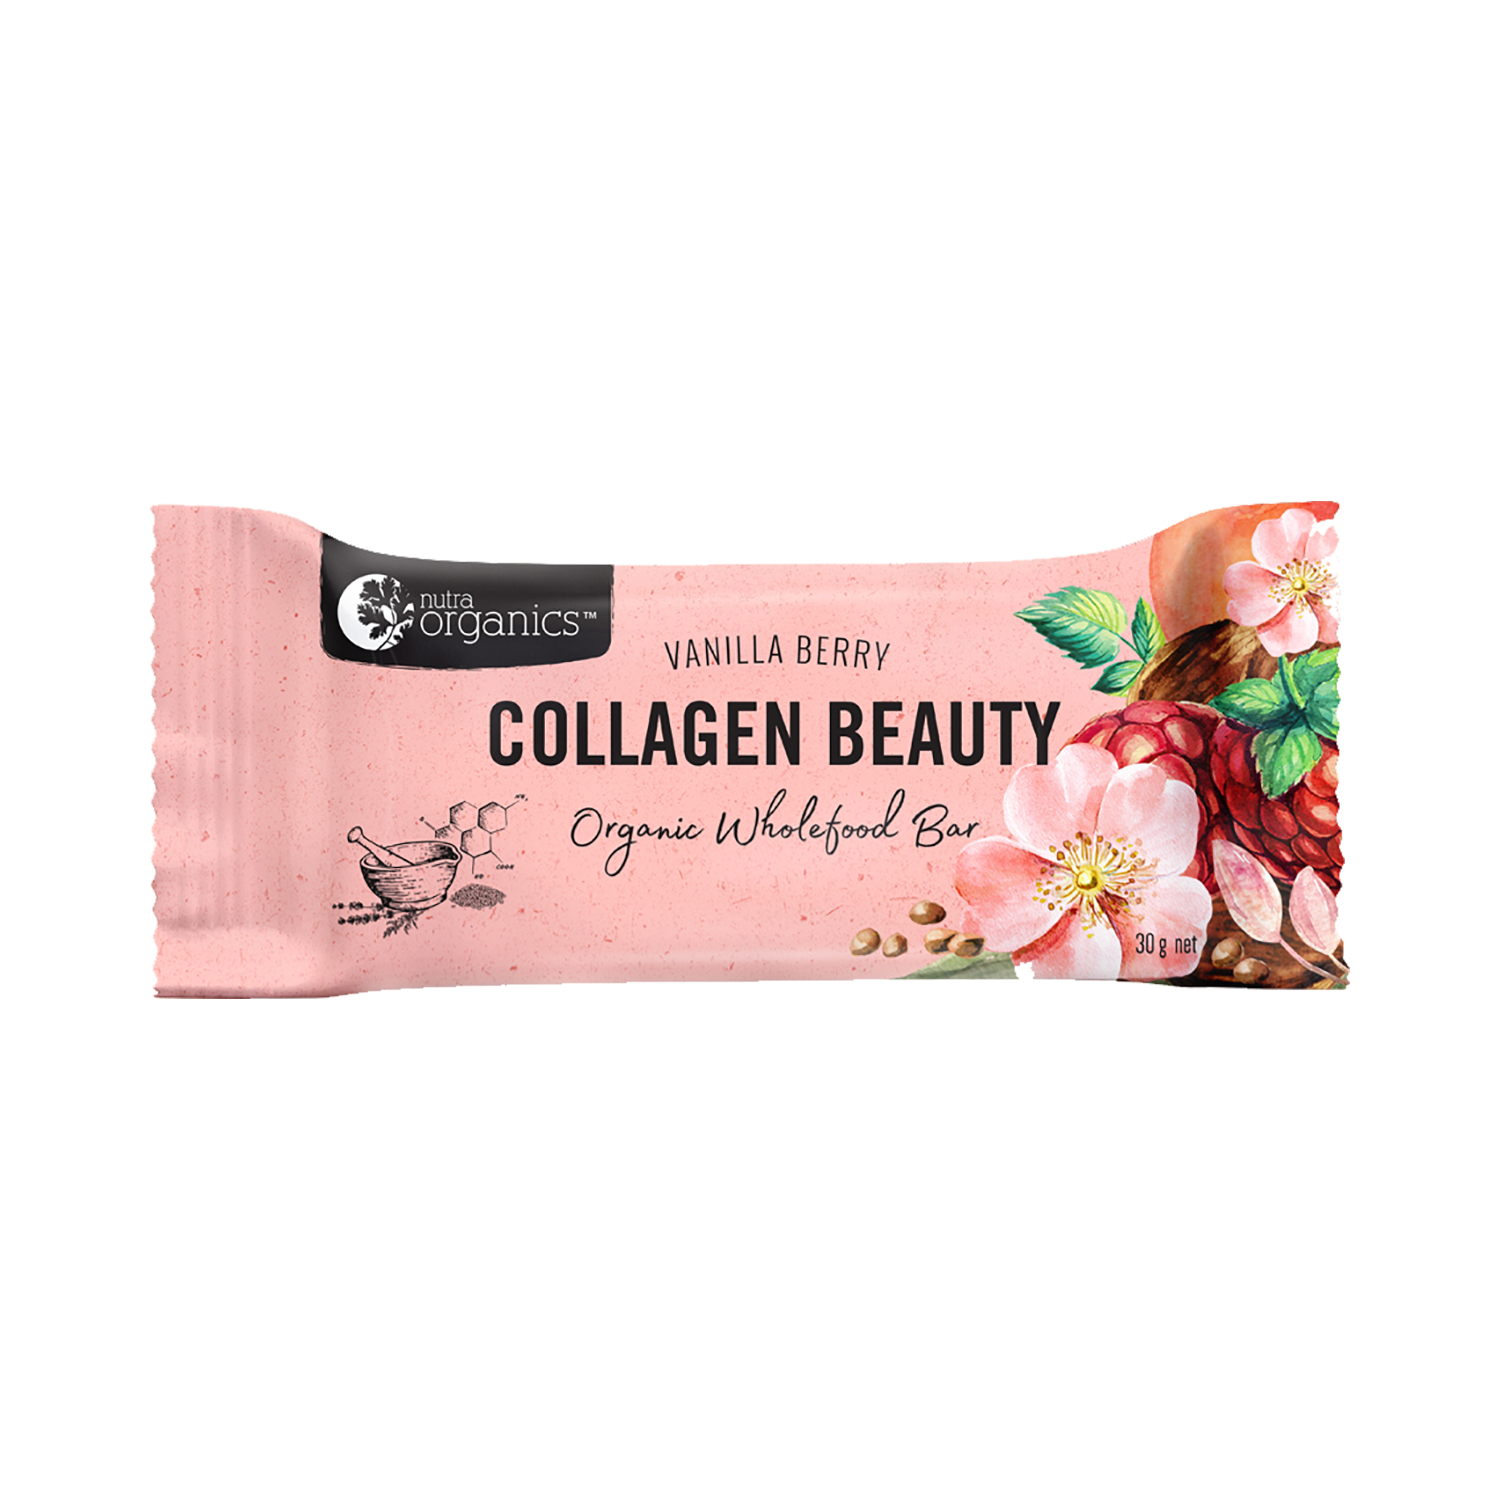 Collagen-Beauty-Vanilla-Berry-single.png